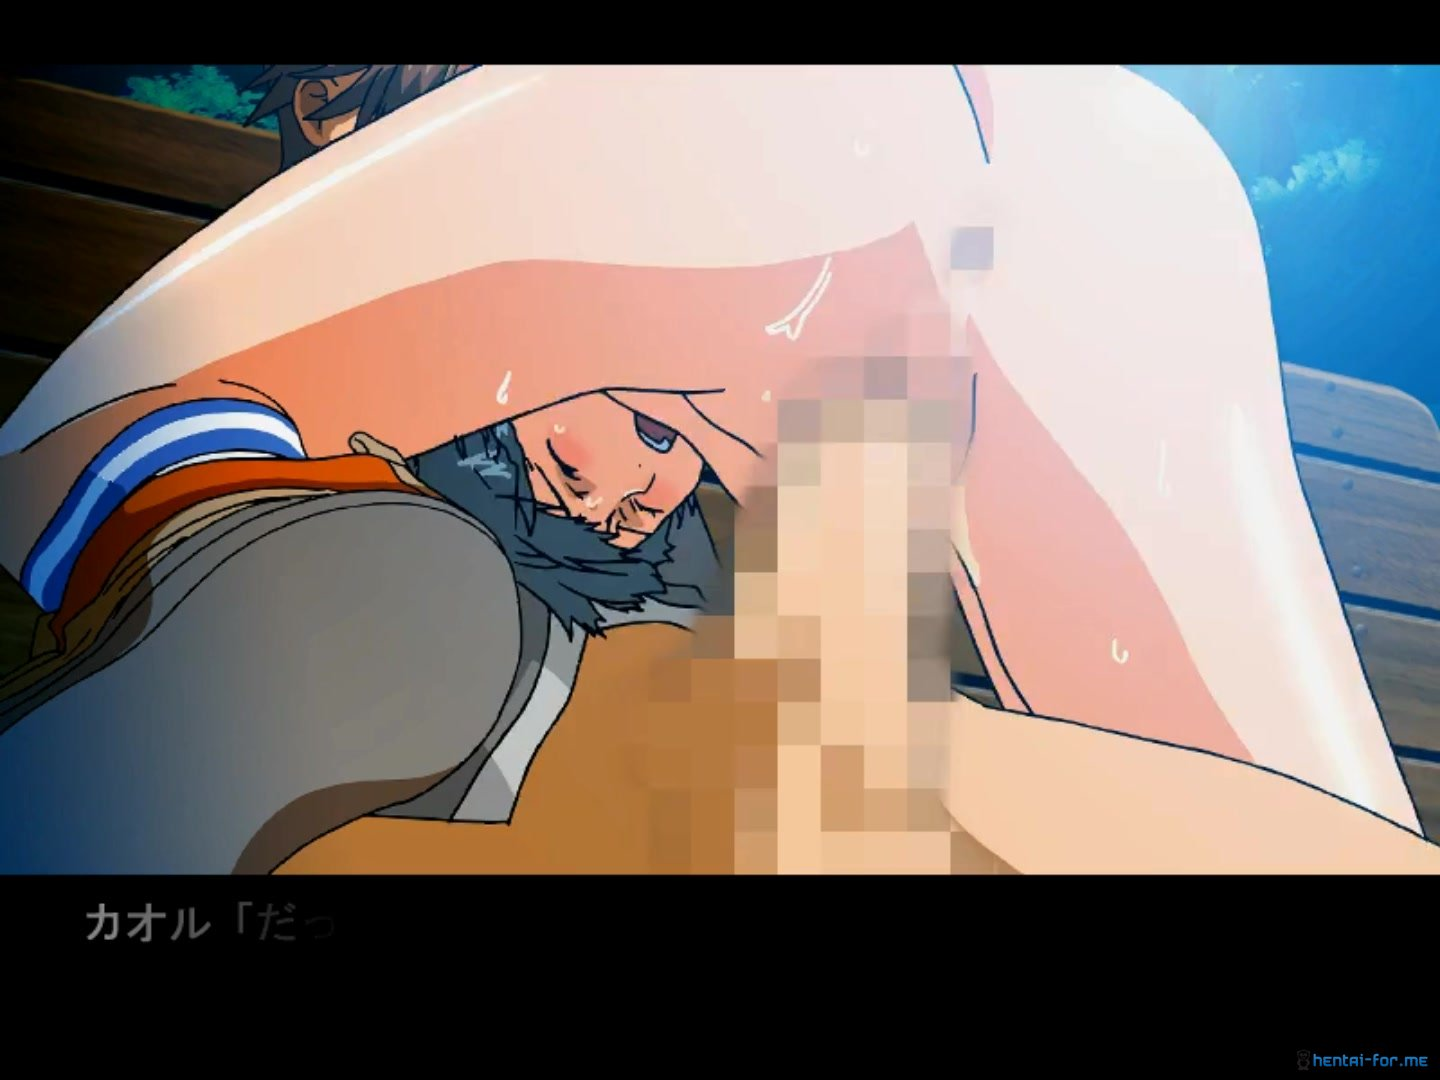 Hentai rogue gif sexy photo